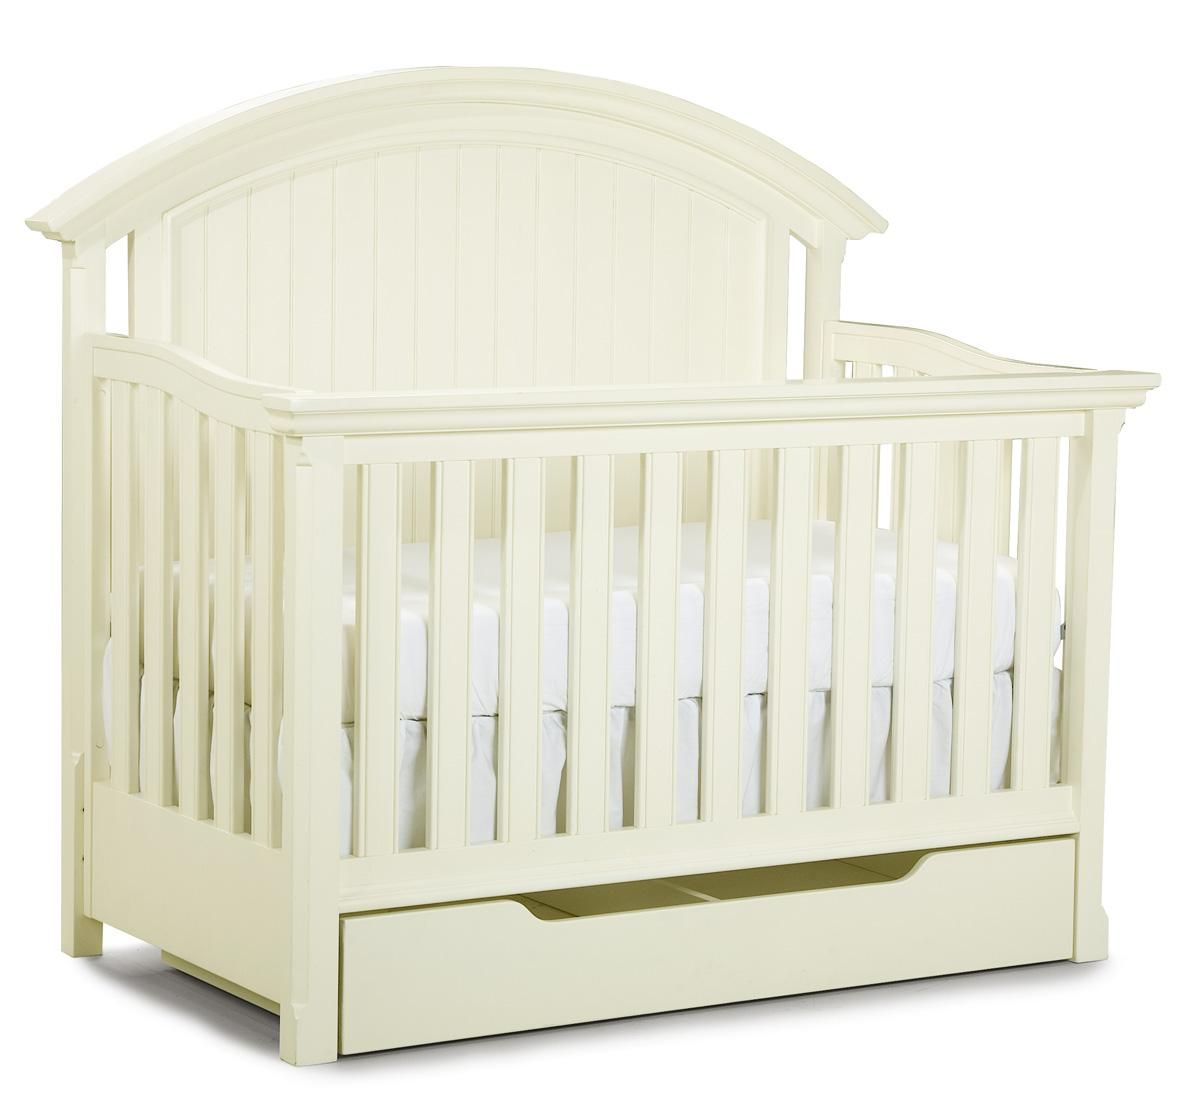 Pottery barn kids sleigh crib - 17 Best Images About Cribs On Pinterest Cherries Extra Storage And Pottery Barn Kids